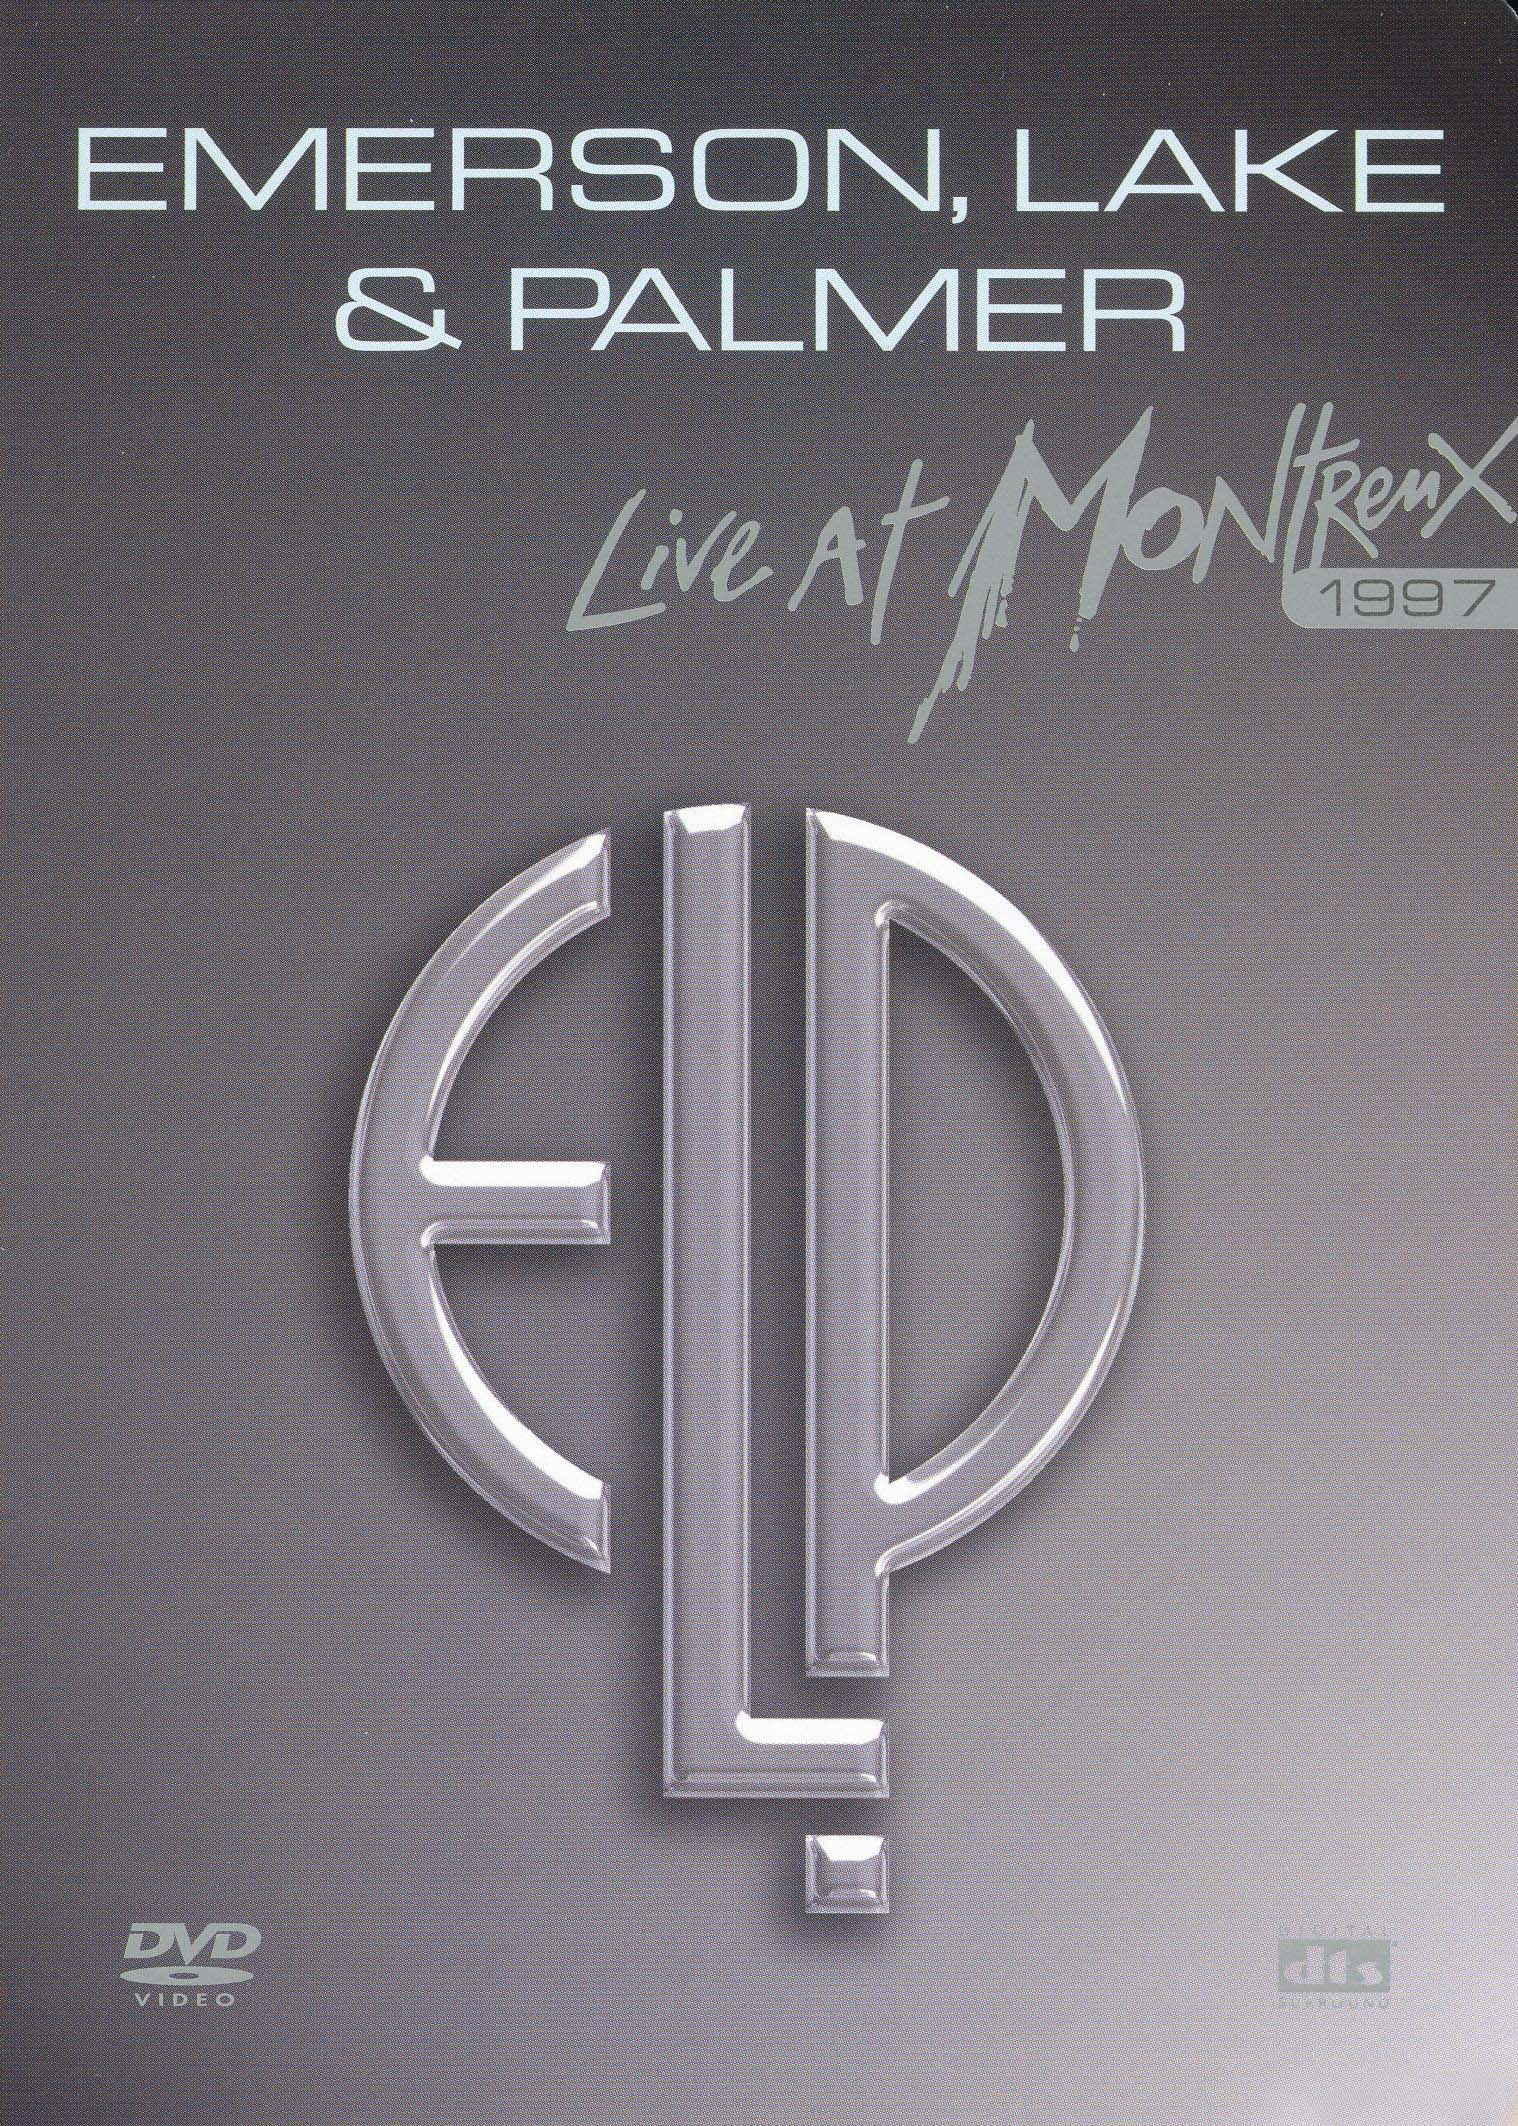 Emerson, Lake & Palmer: Live at Montreux, 1997